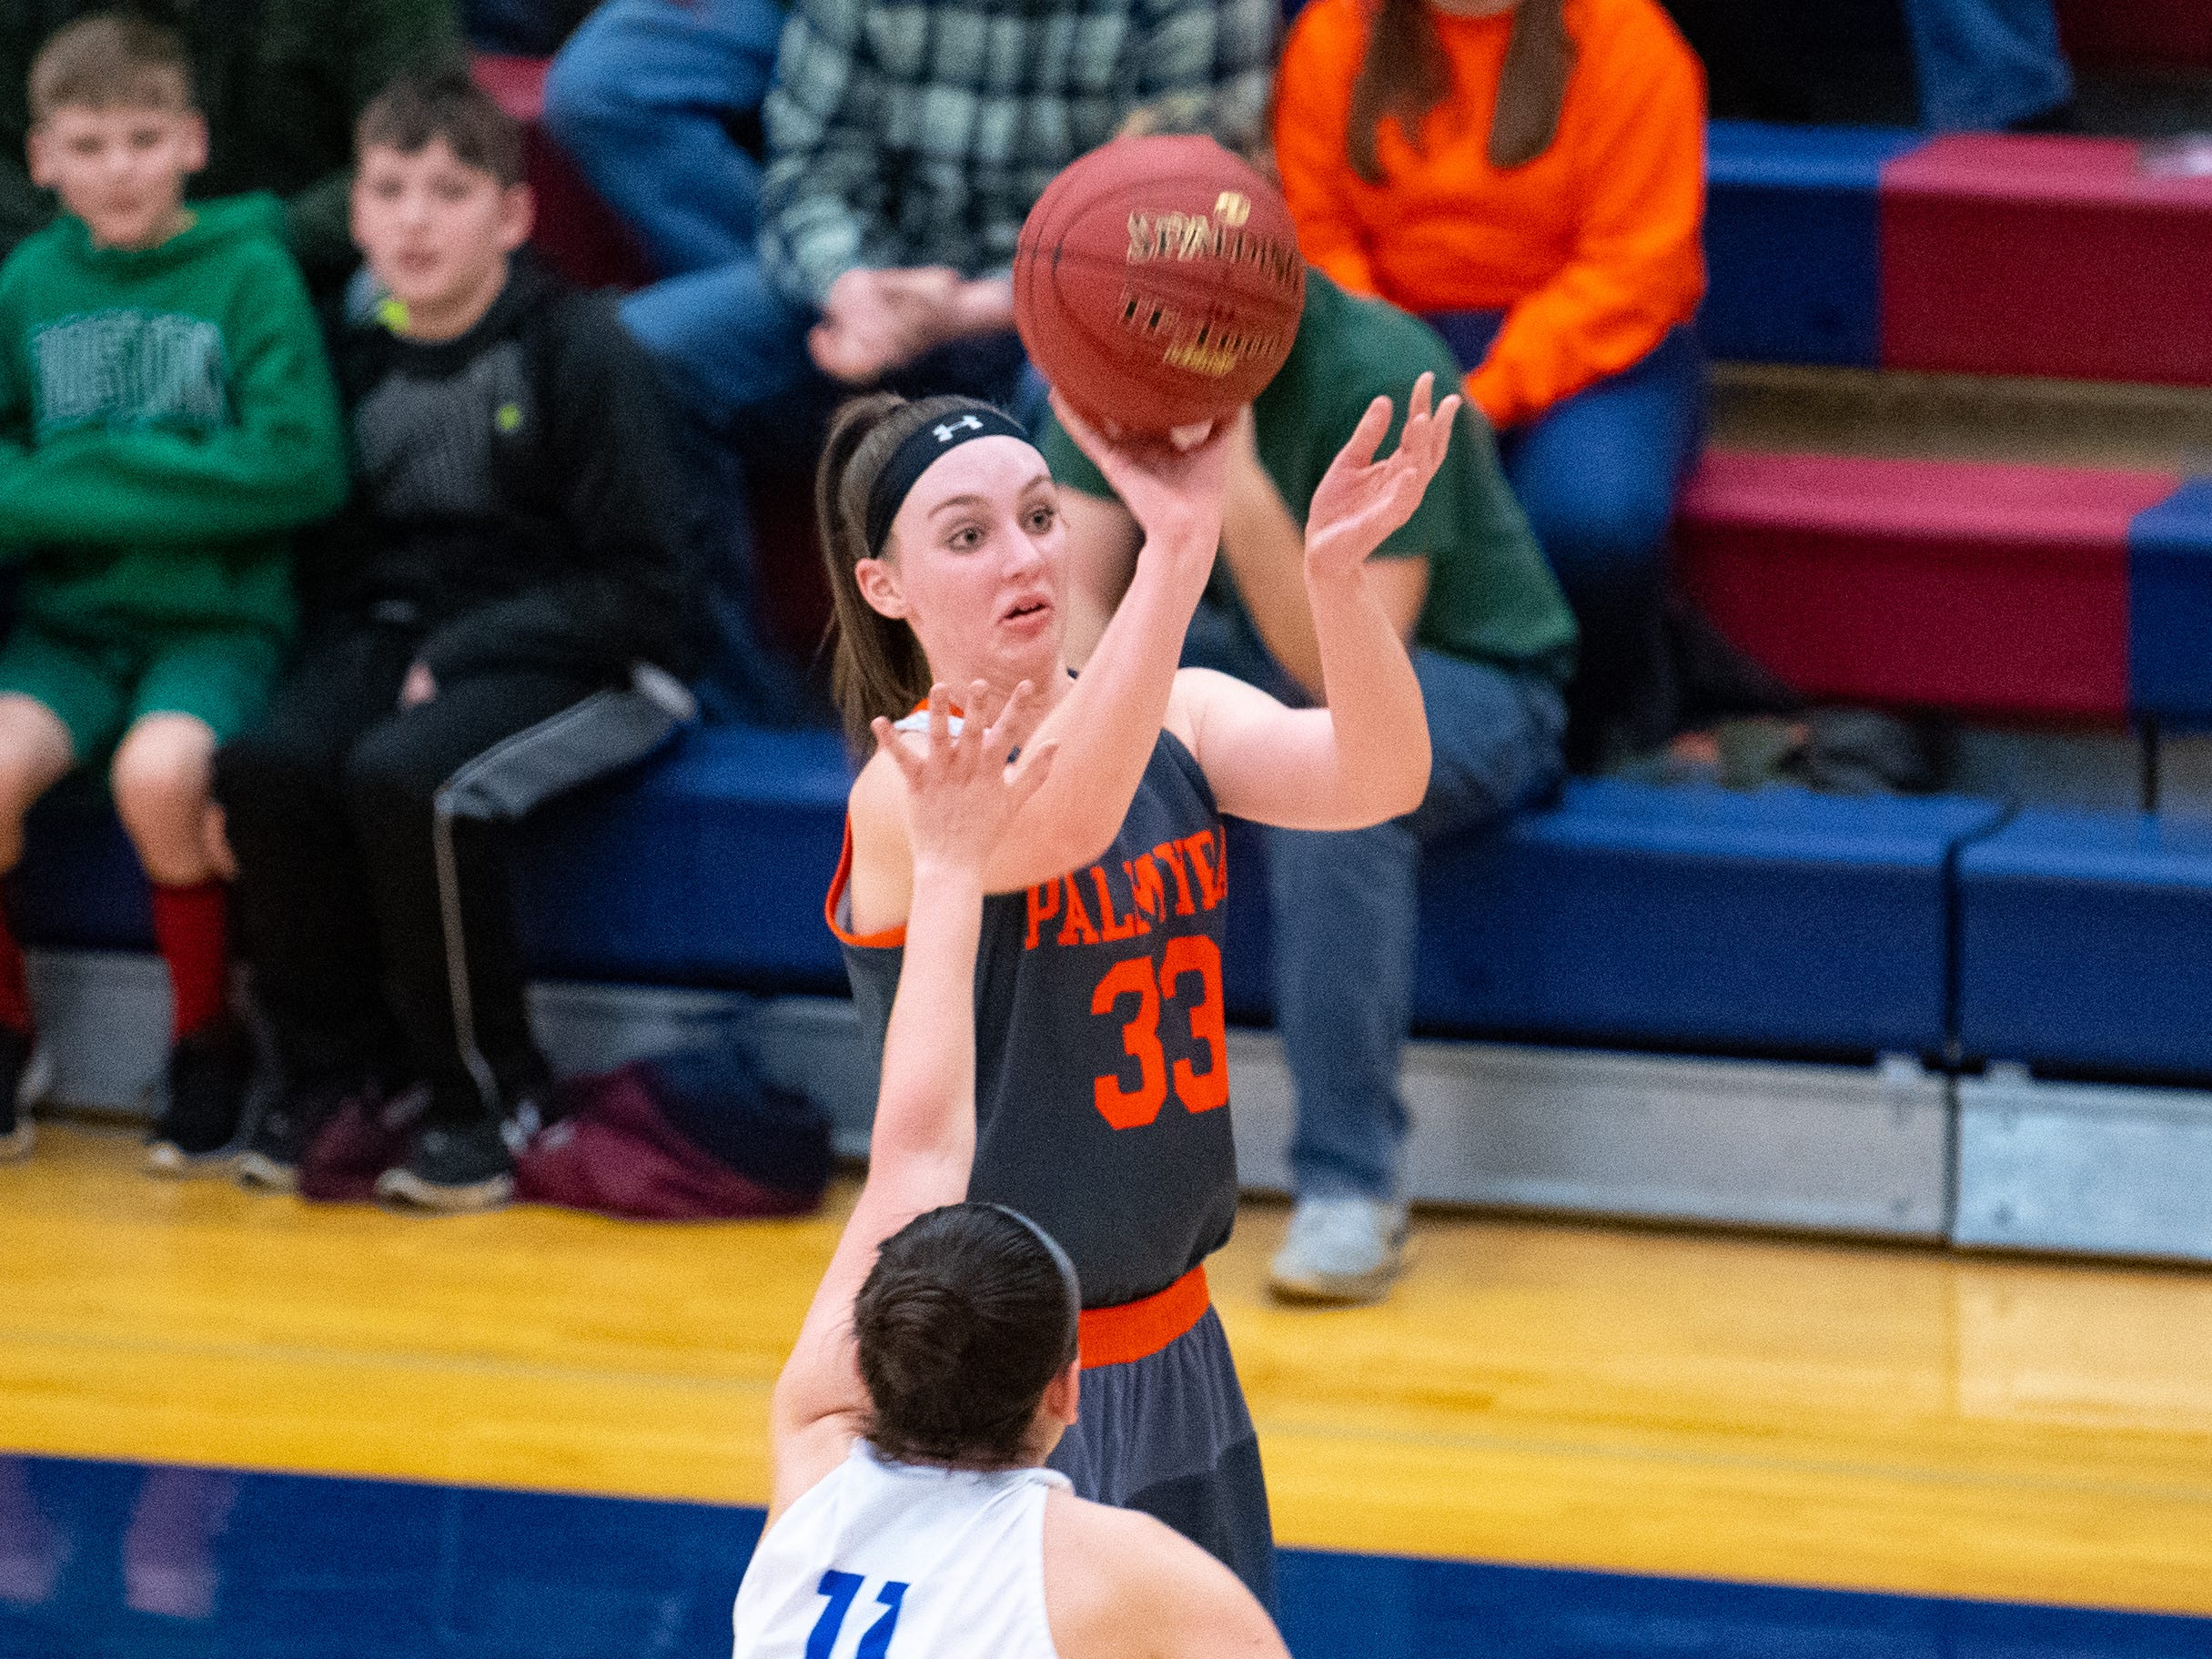 Olivia Richardson (33) shoots a three pointer during the District 3 Class 5A girls' basketball quarterfinal between Spring Grove and Palmyra, Friday, February 22, 2019 at Spring Grove Area High School. The Cougars defeated the Rockets 43 to 41.